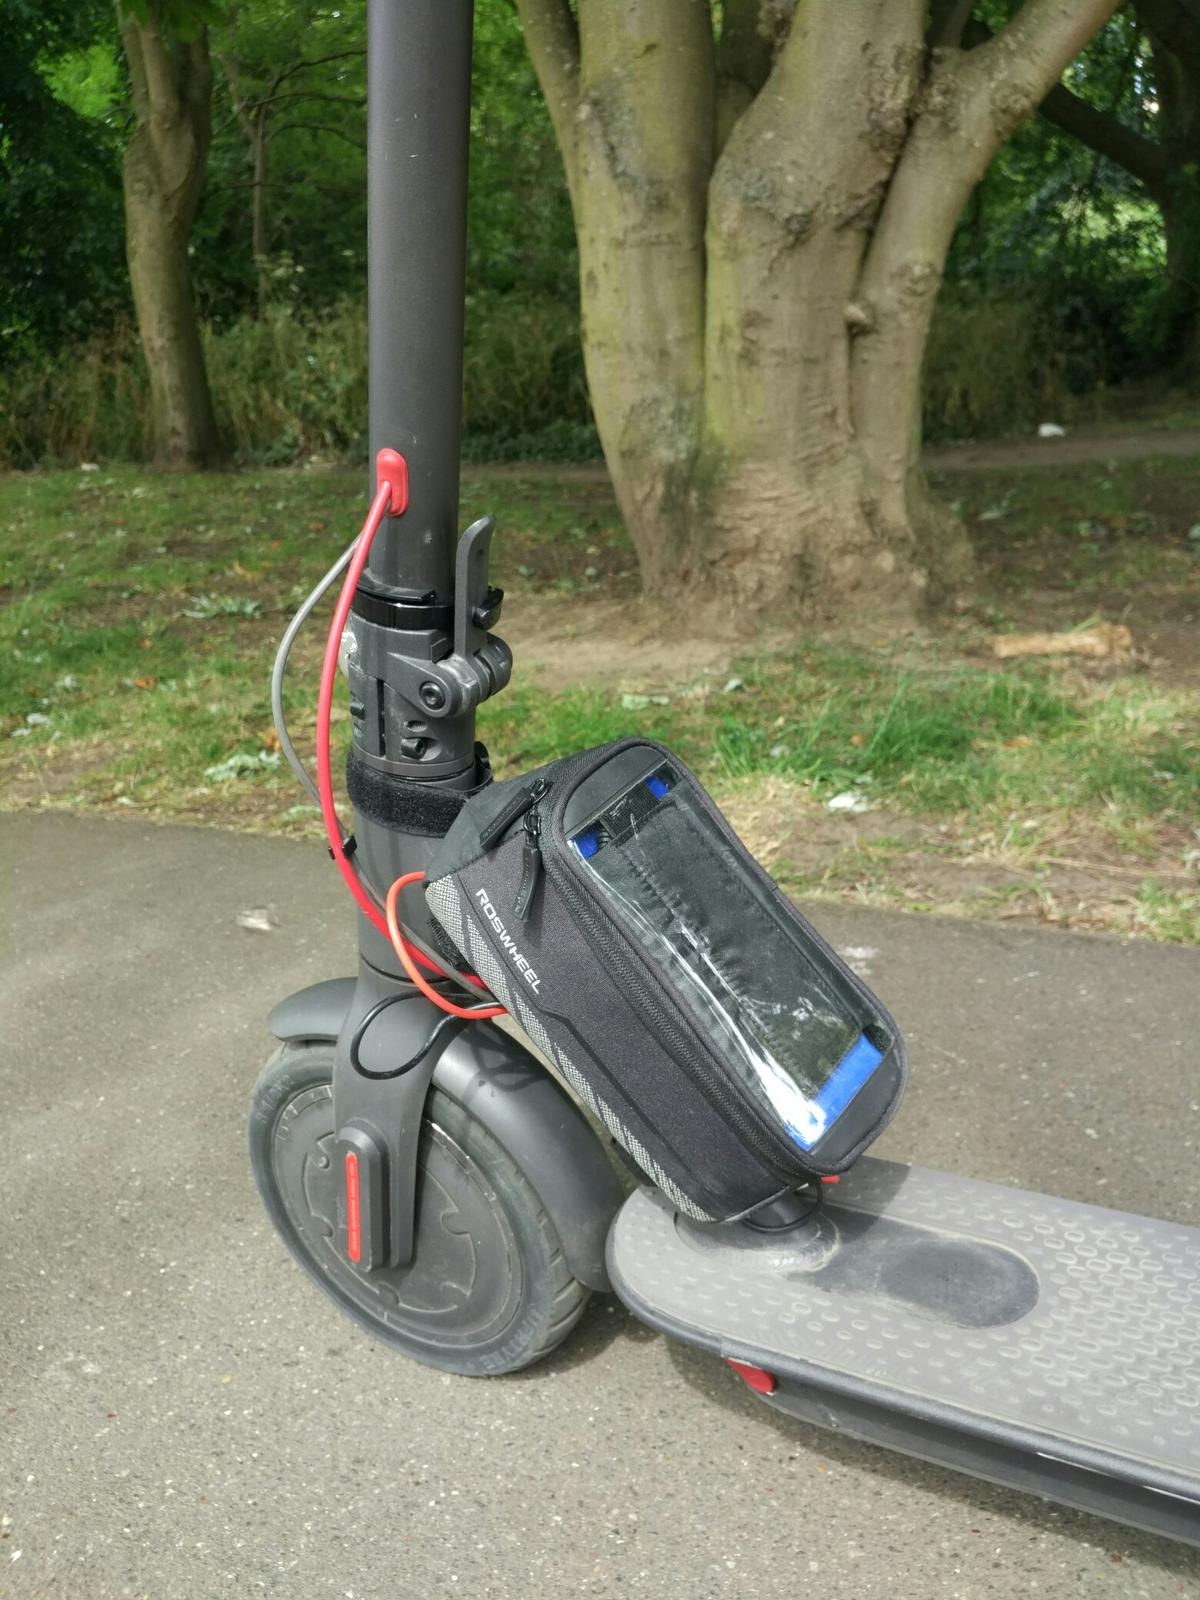 Xiaomi electric scooter M365 in SE6 Lewisham for £360 00 for